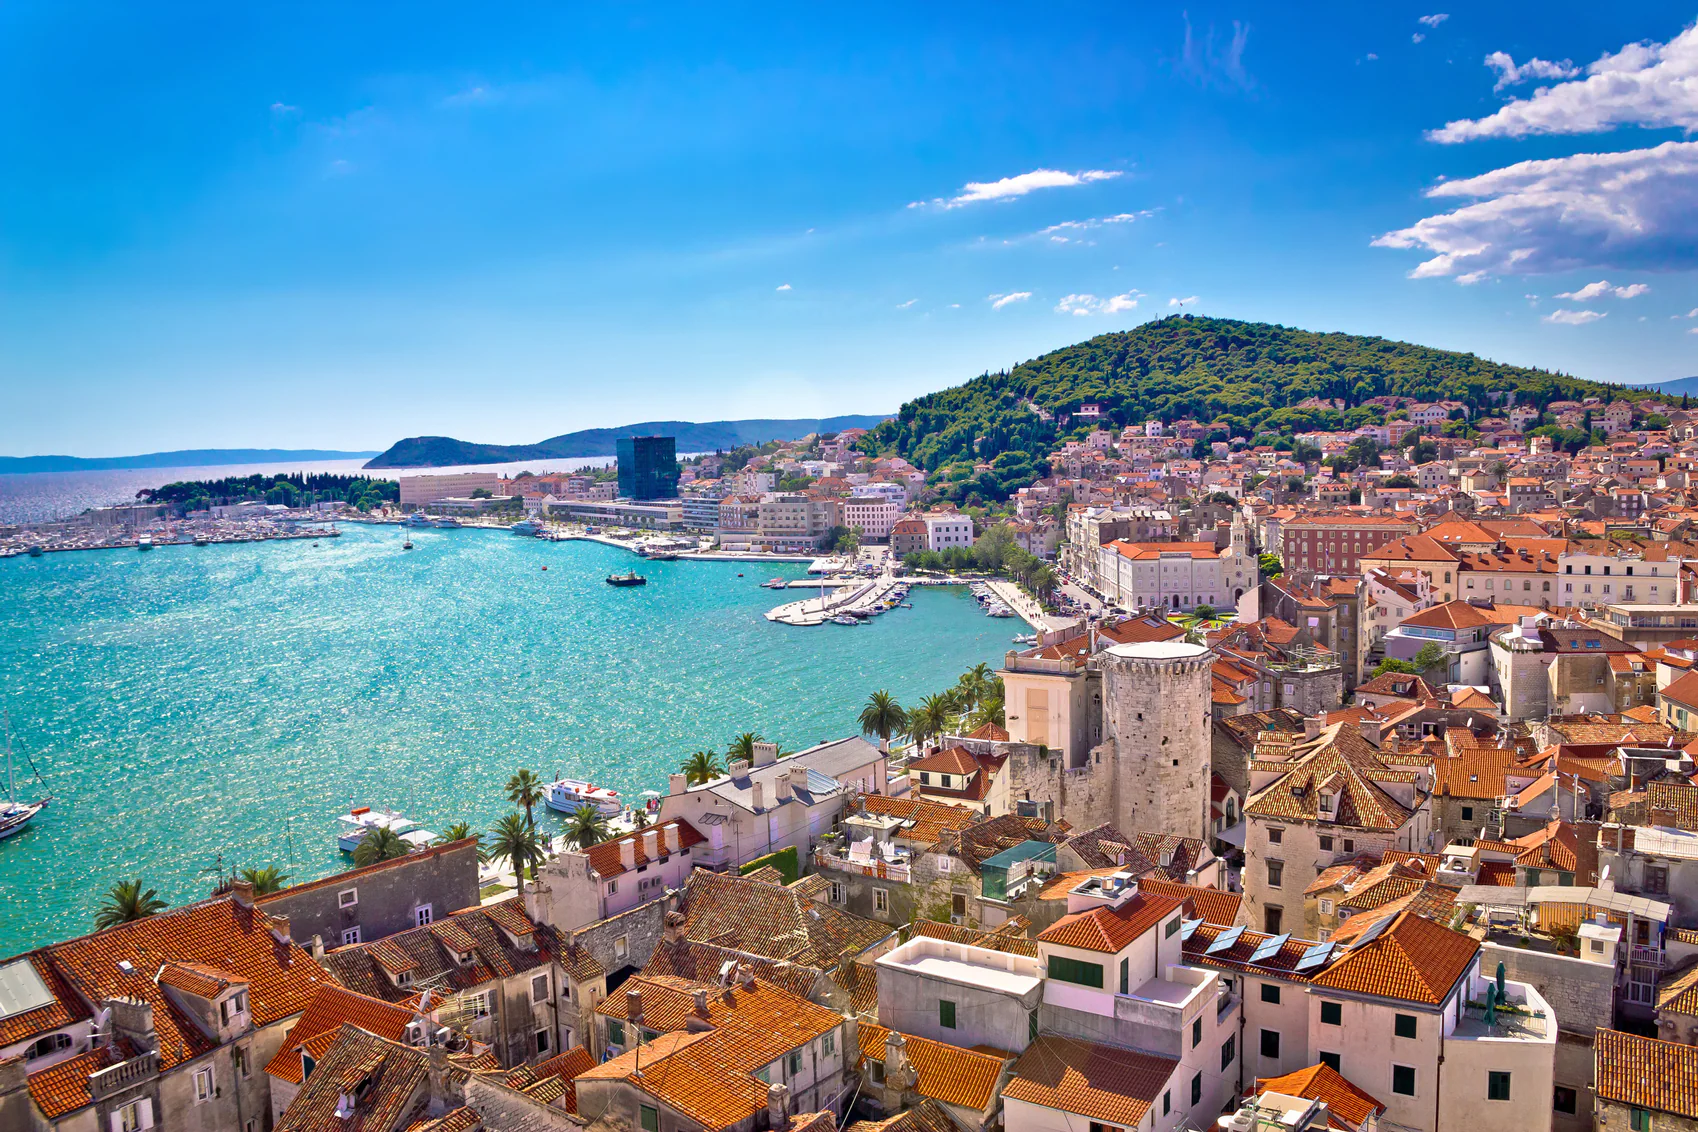 Croatia has already reported a 40% increase in tourists relative to last year. Photo: Getty Images